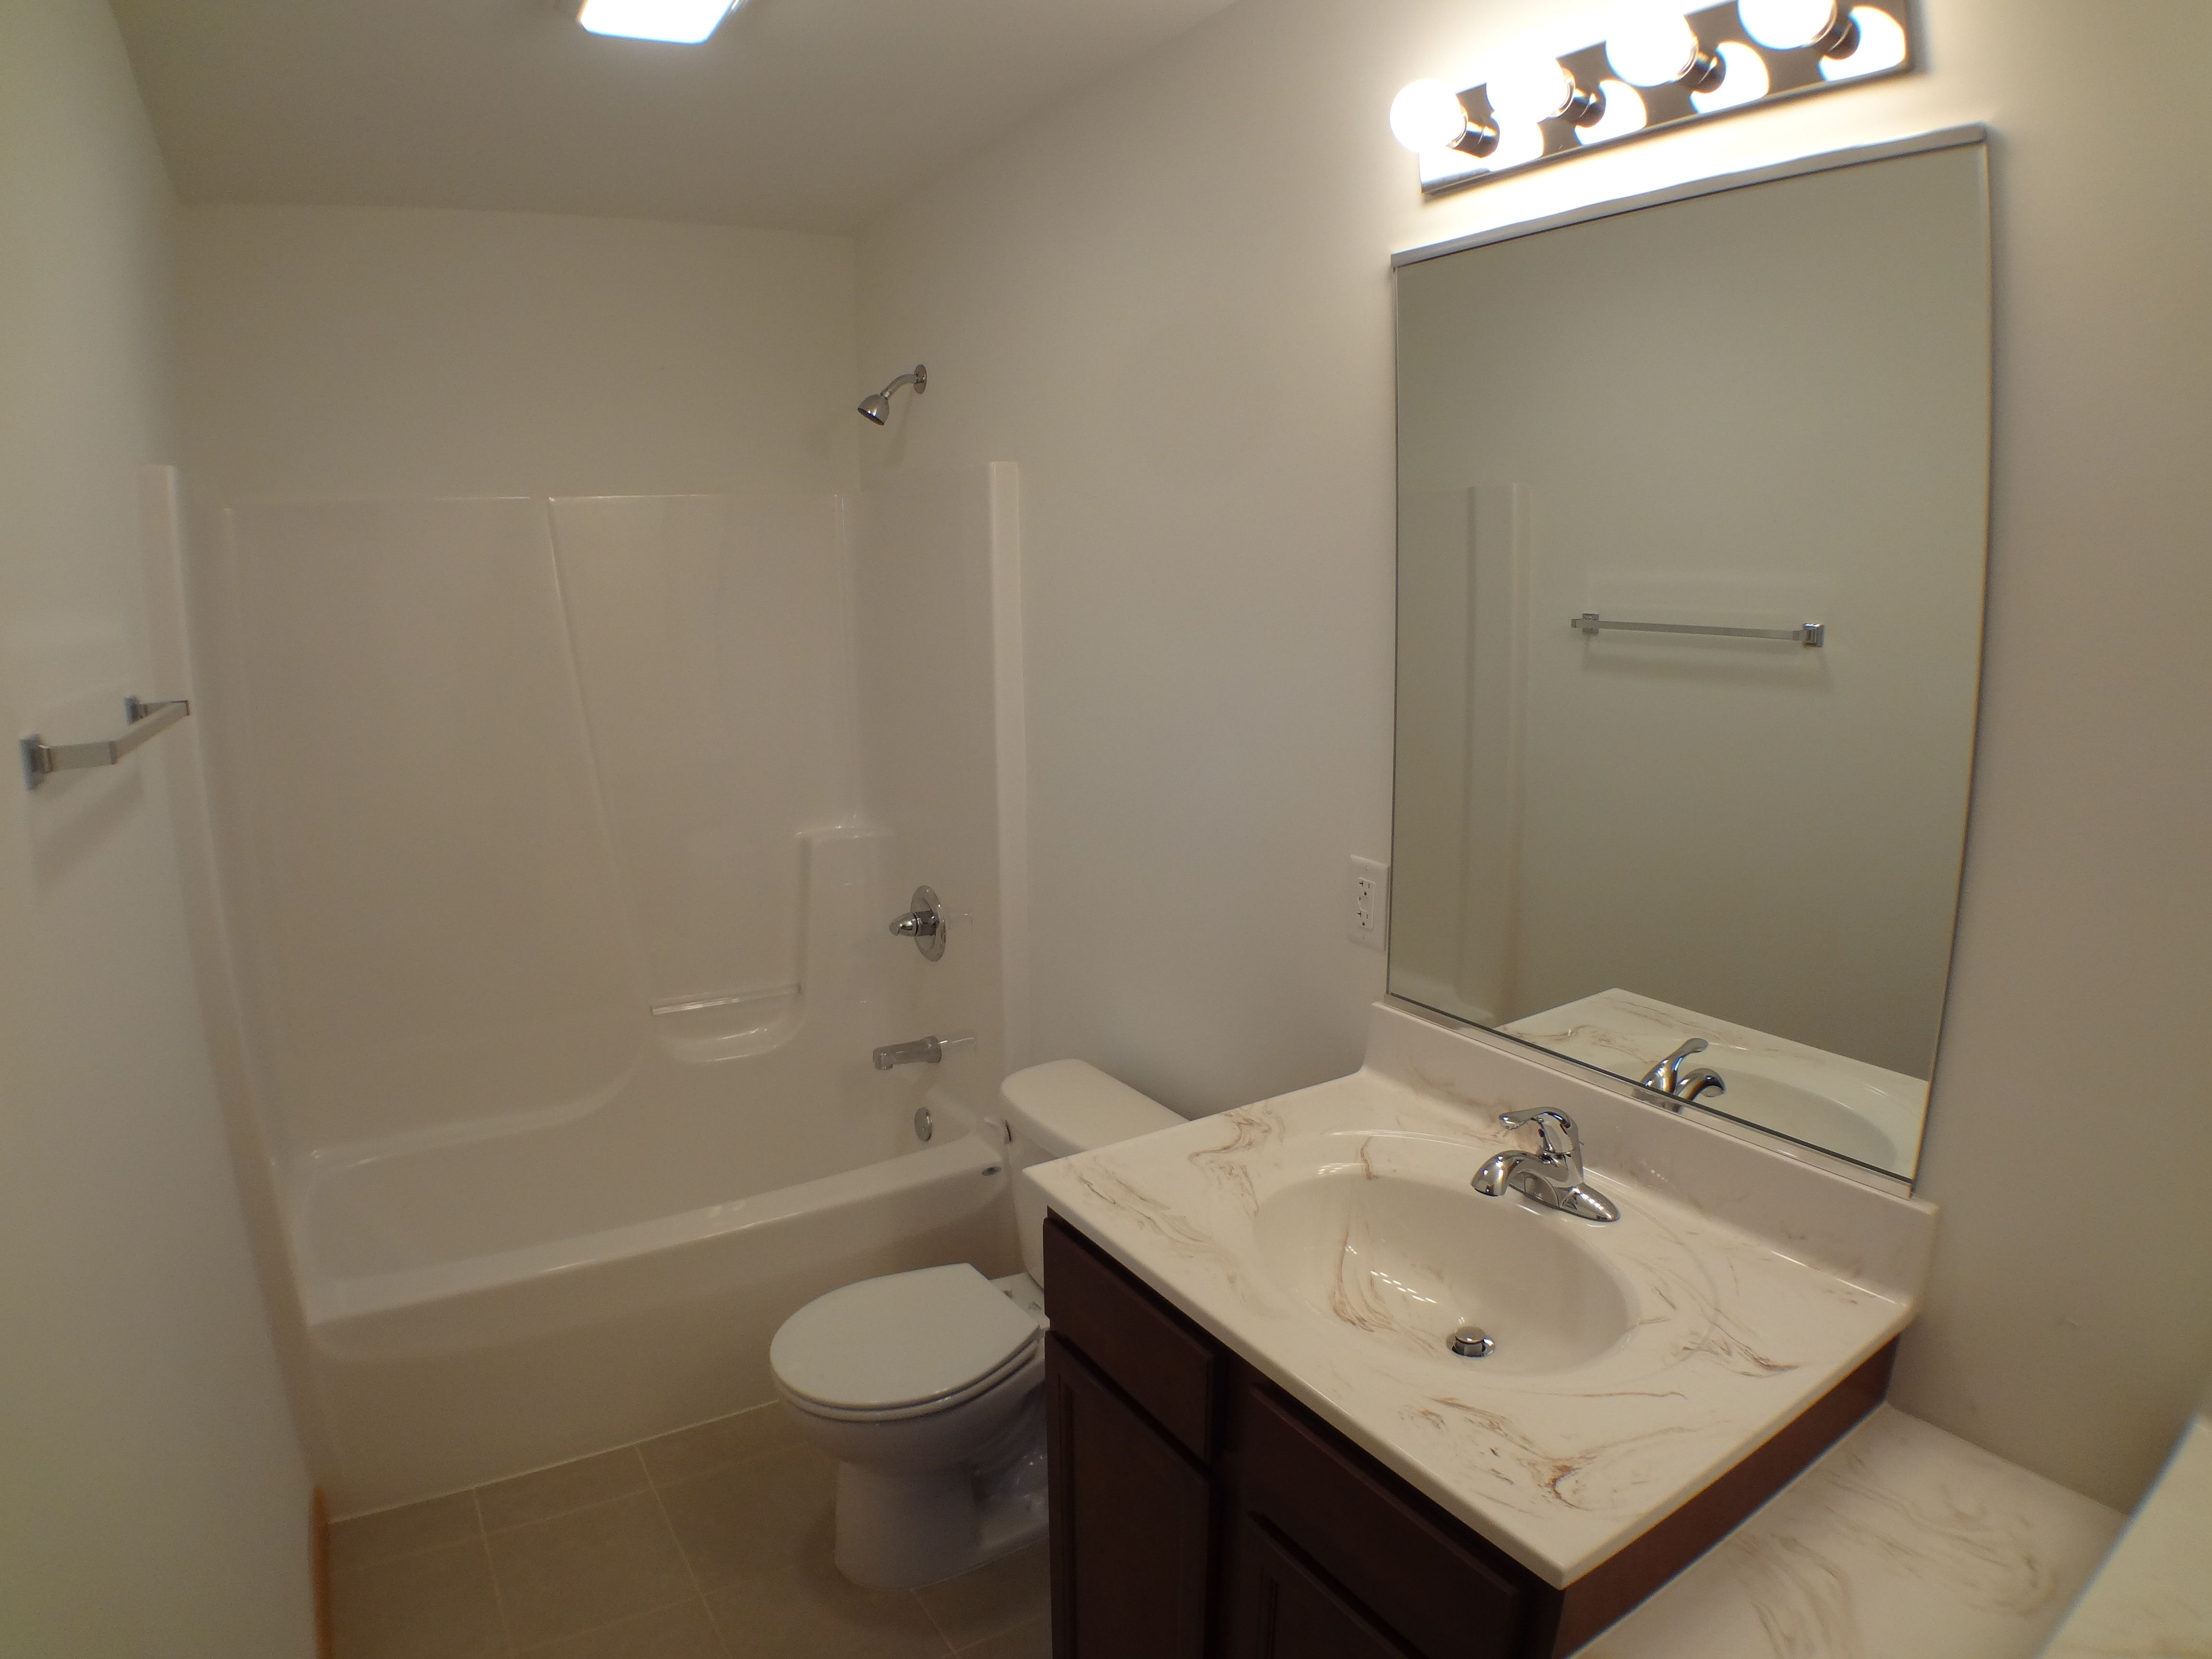 Bathroom featured in the Amhurst III By Accent Homes Inc. in Gary, IN